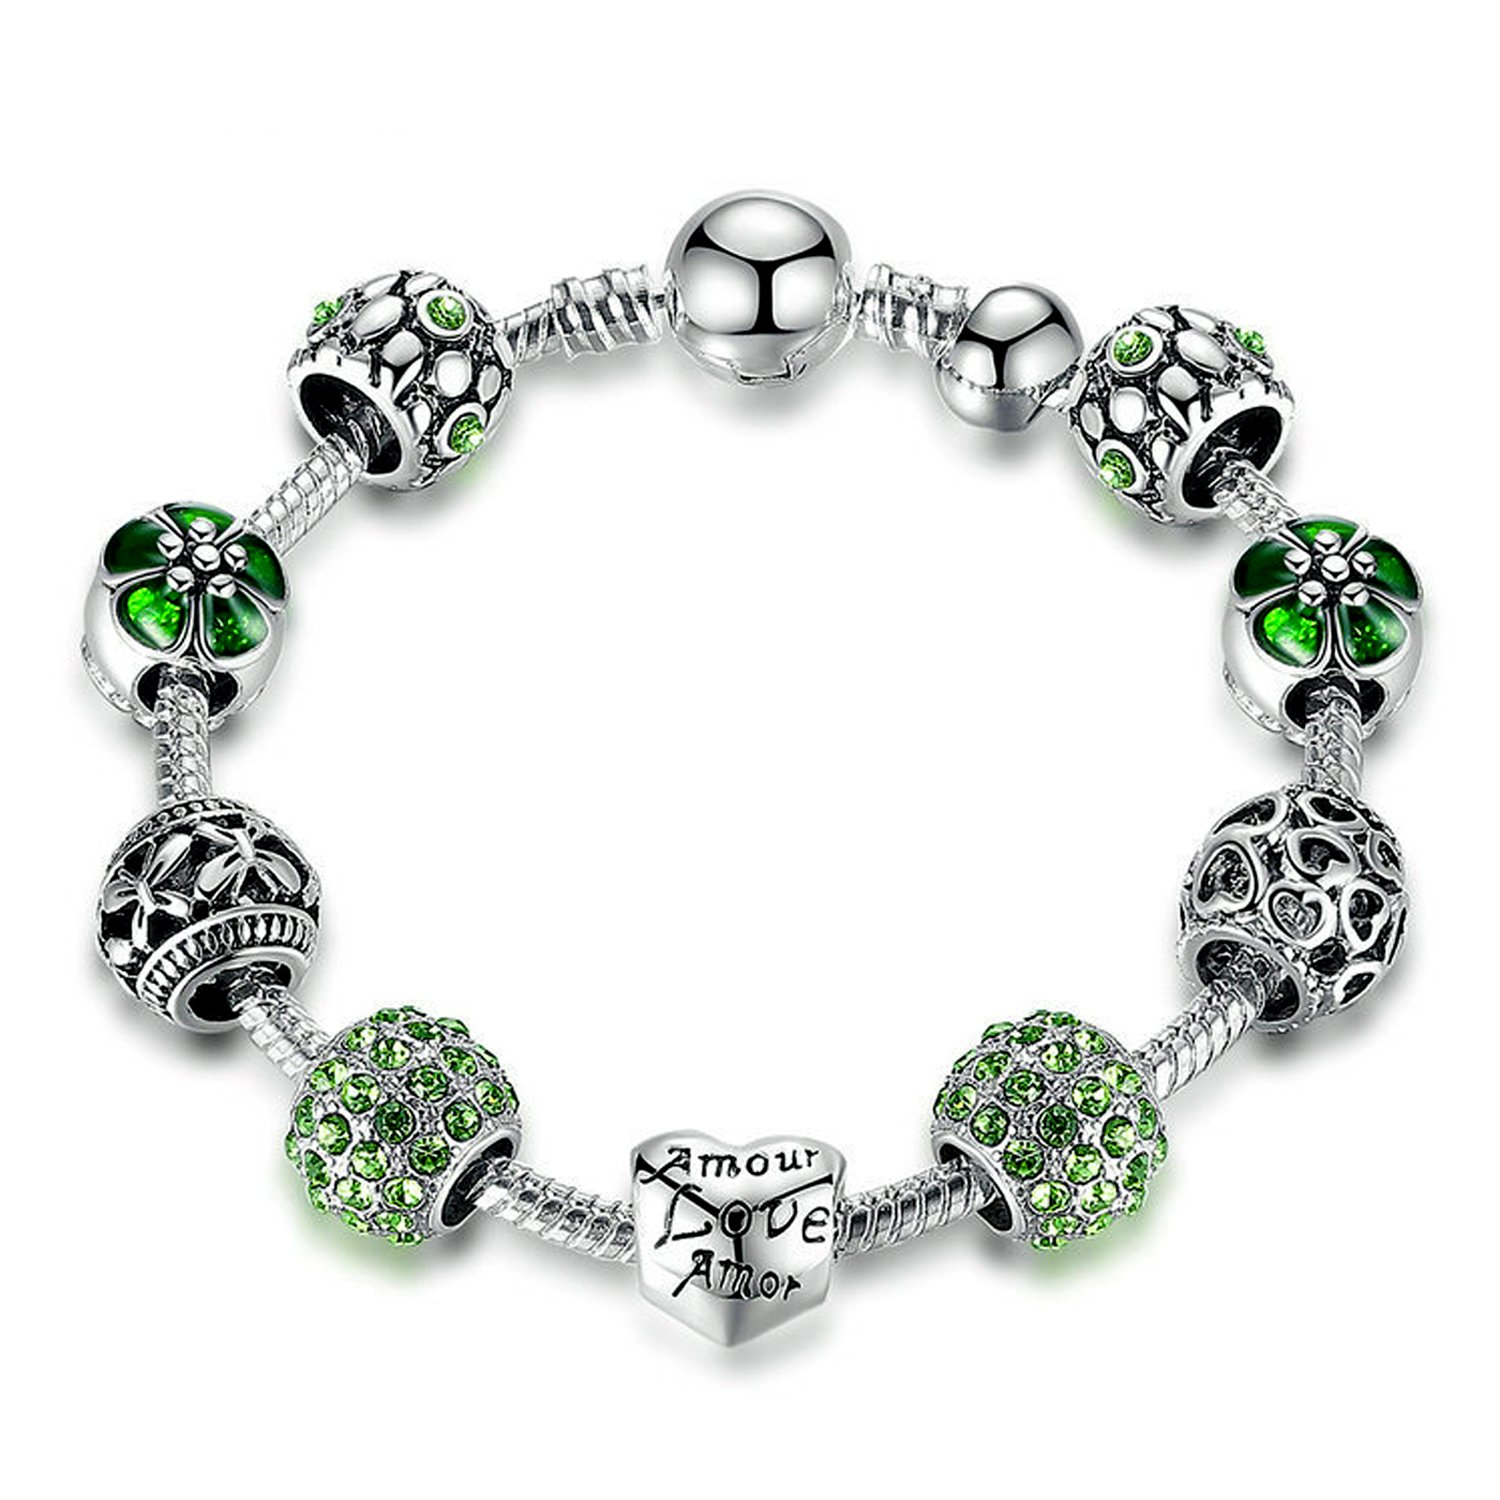 YOUFENG Love Beads Charms Bracelet for Girls and Women Murano Glass Beads Rose Flower Charms Amethyst Bracelets (Amor green CZ bracelet)